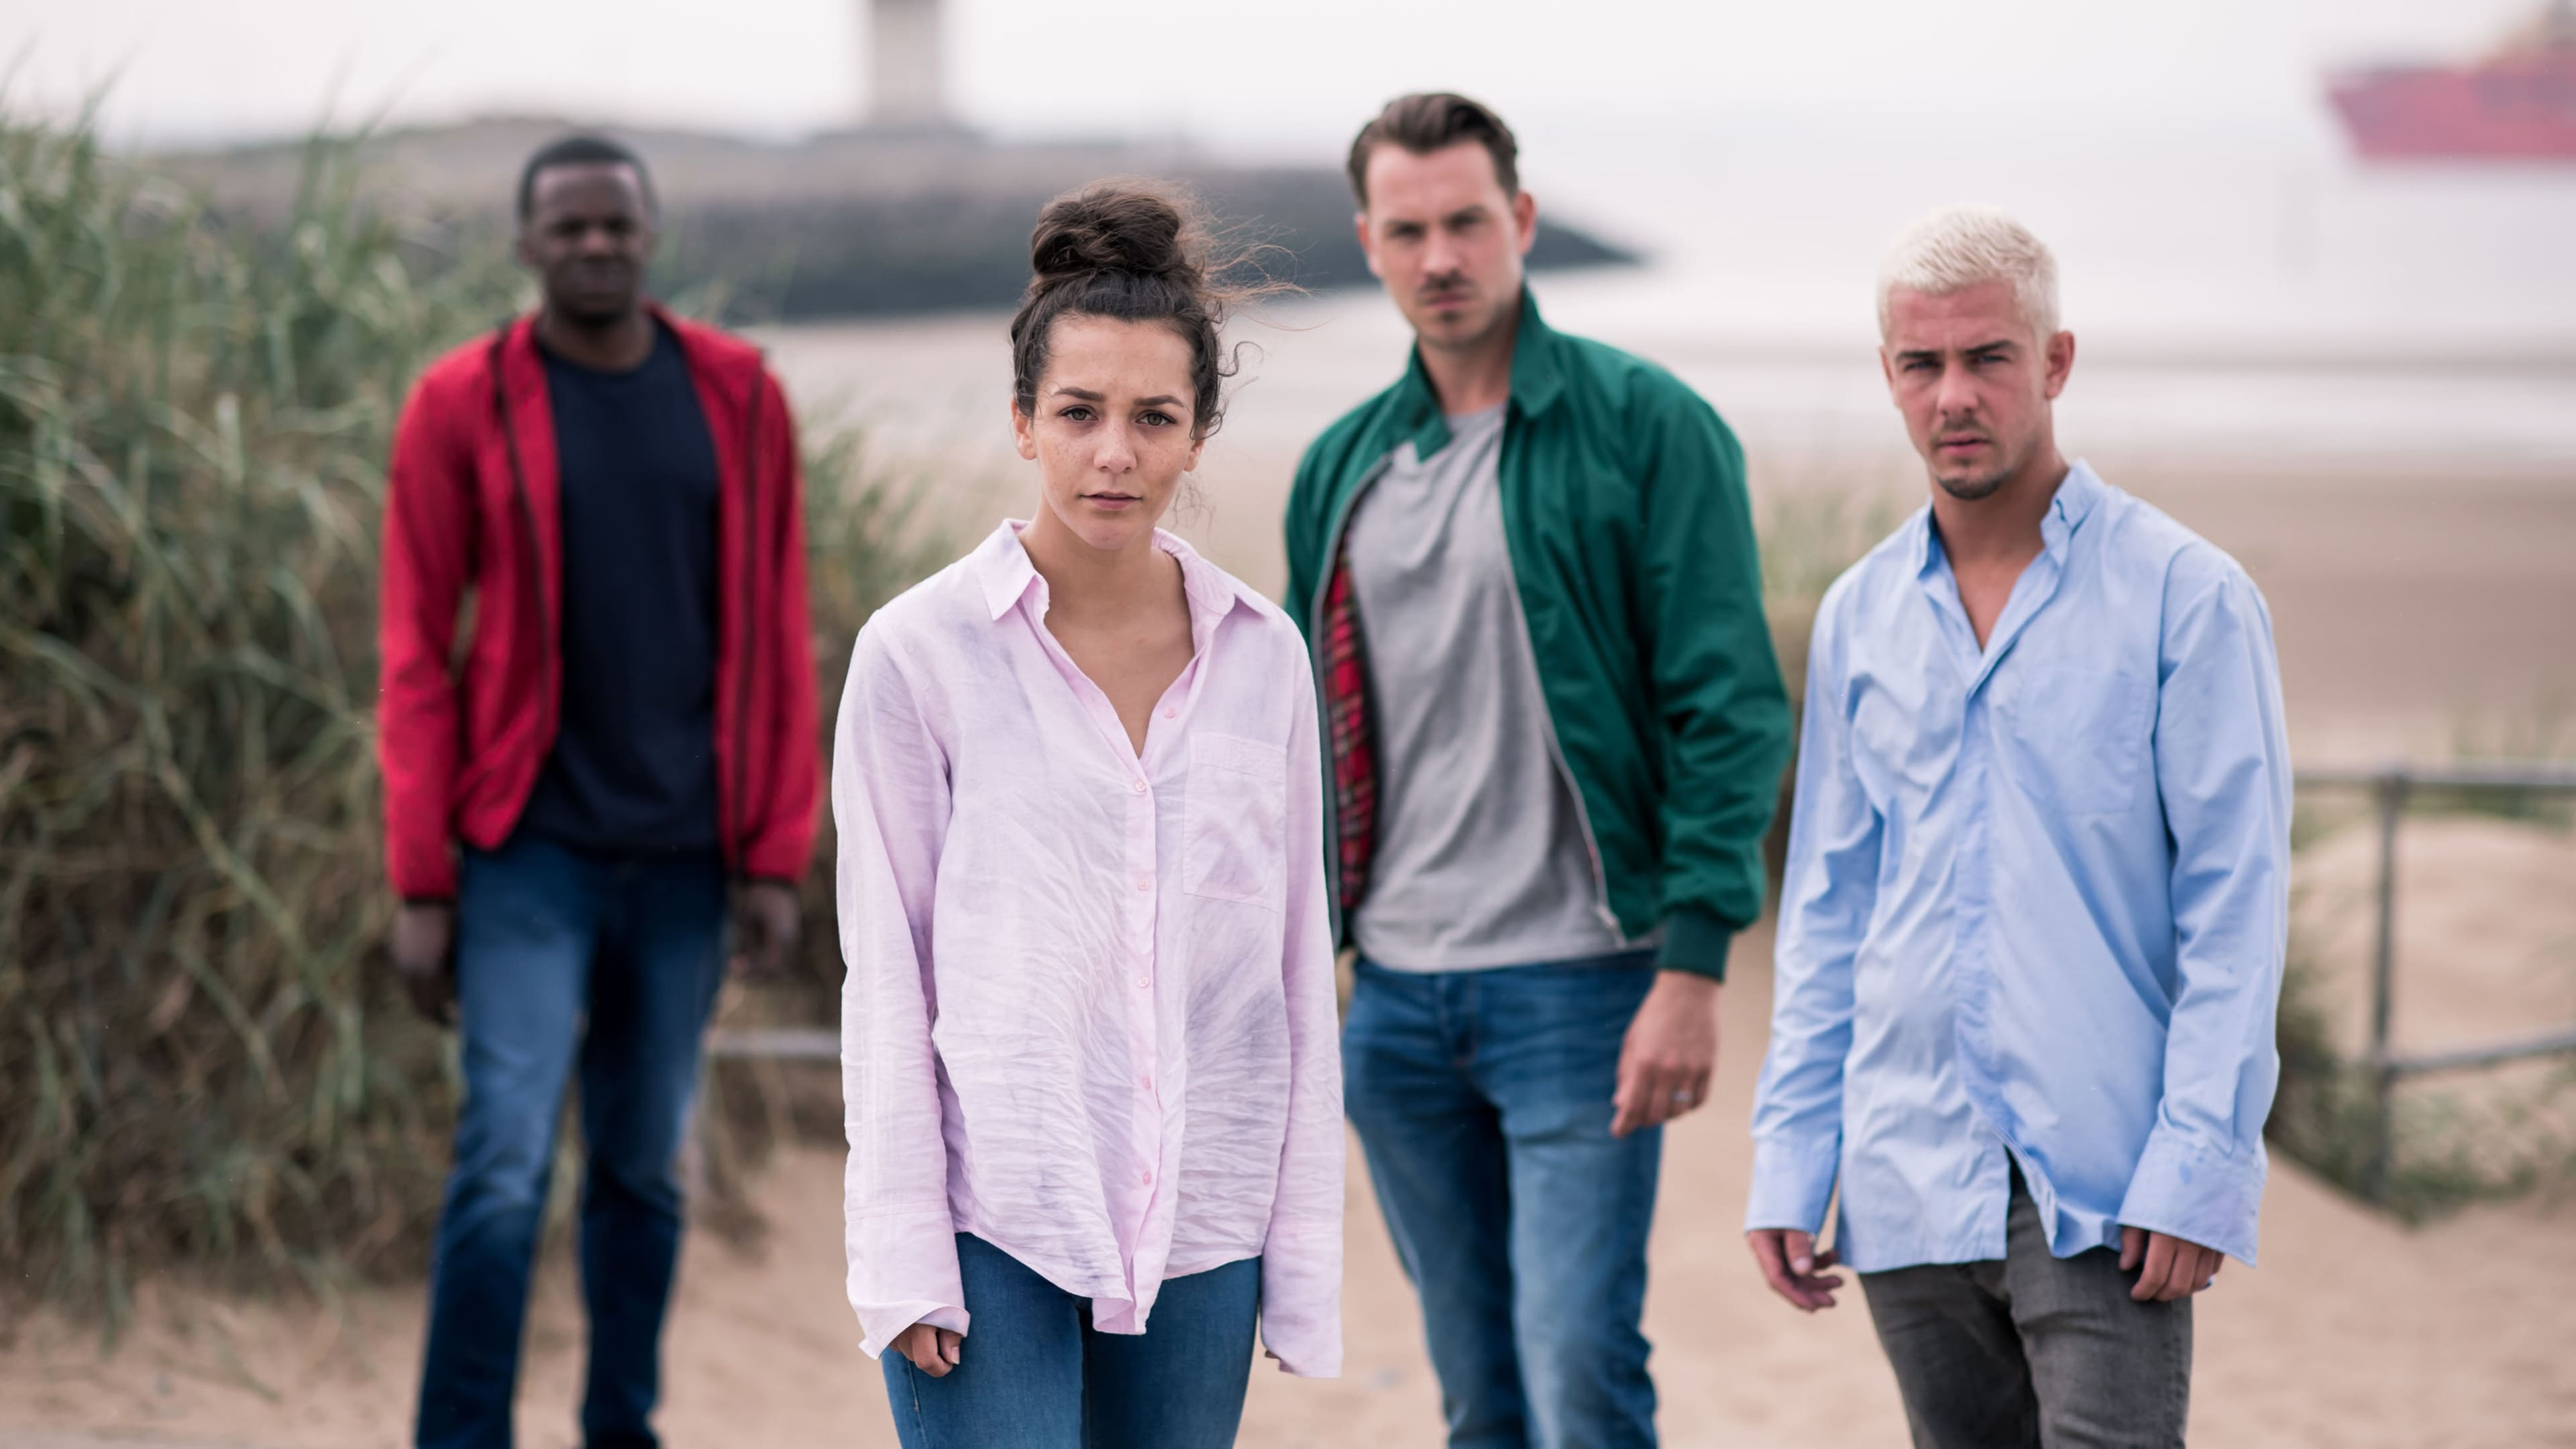 Hollyoaks - Season 22 Episode 259 : Beyond the Call of Duty